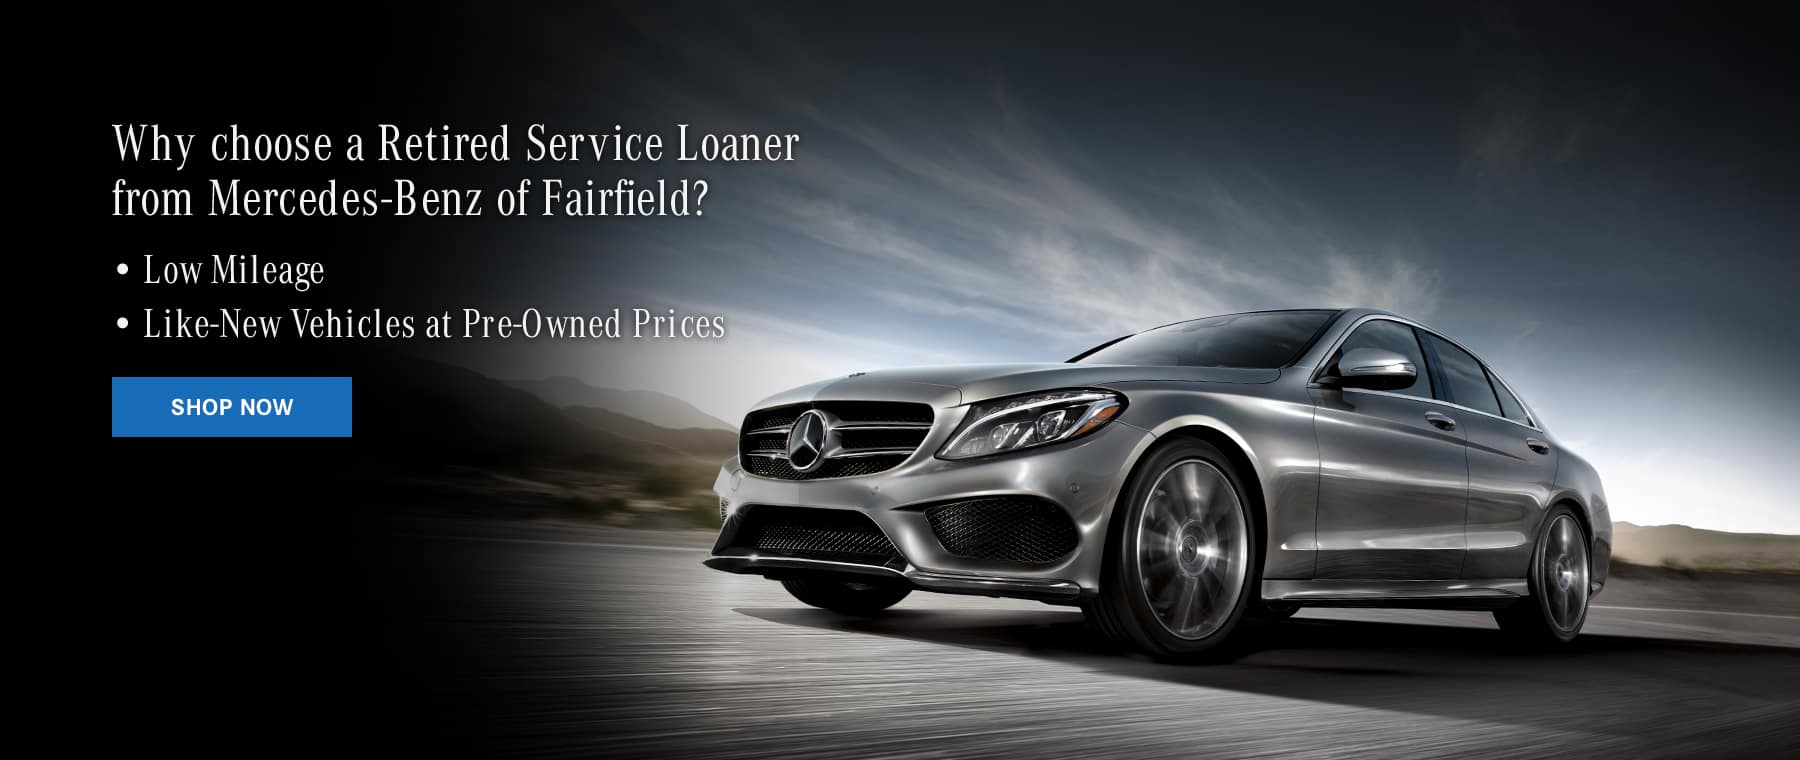 Mercedes-Benz of Fairfield | New and Used Mercedes-Benz ...